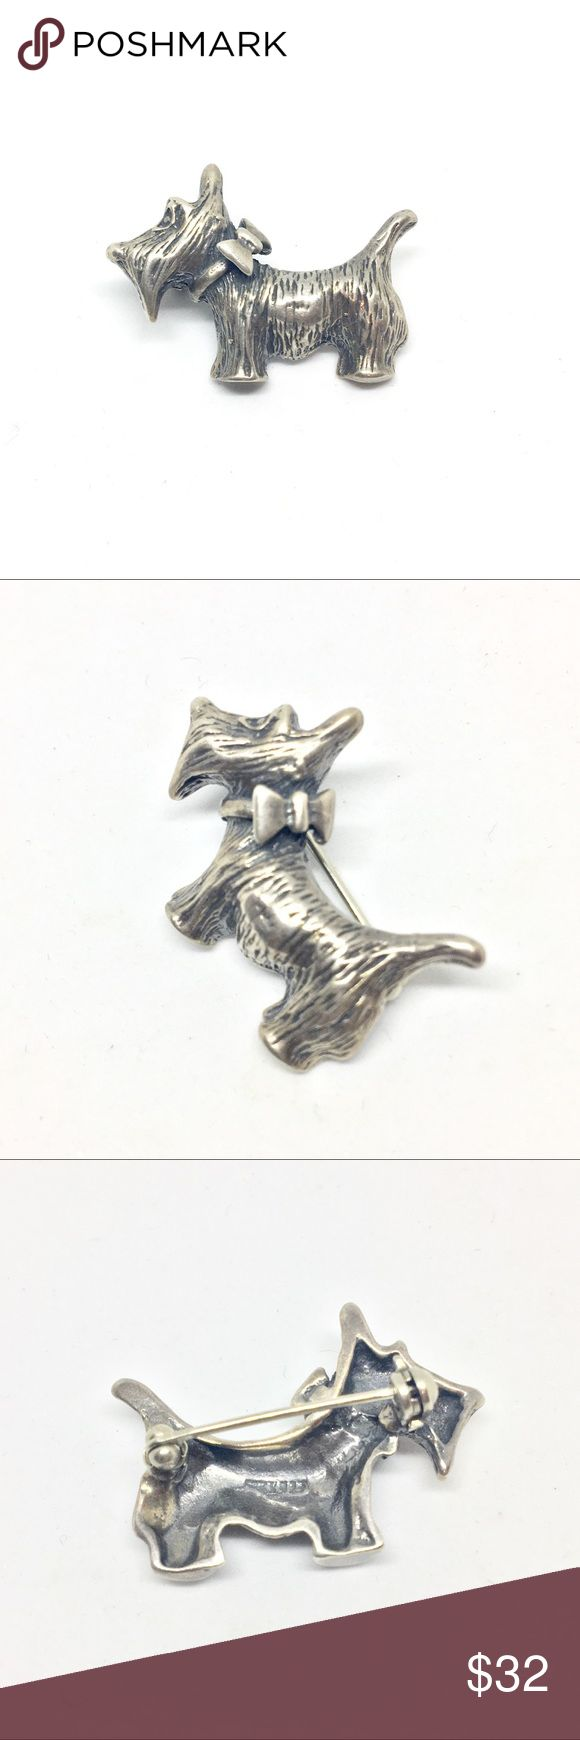 "Sterling Silver Vintage Scottie Dog Pin True vintage 925 sterling silver Scottie dog brooch pin. Pictures the profile of the dog wearing a bow collar. Textured with fur detailing all over. Signed 925 on the back. Pin is in perfect condition. Measures 1 1/4"" wide by approximately 3/4"" tall at tallest point. Vintage Jewelry Brooches"